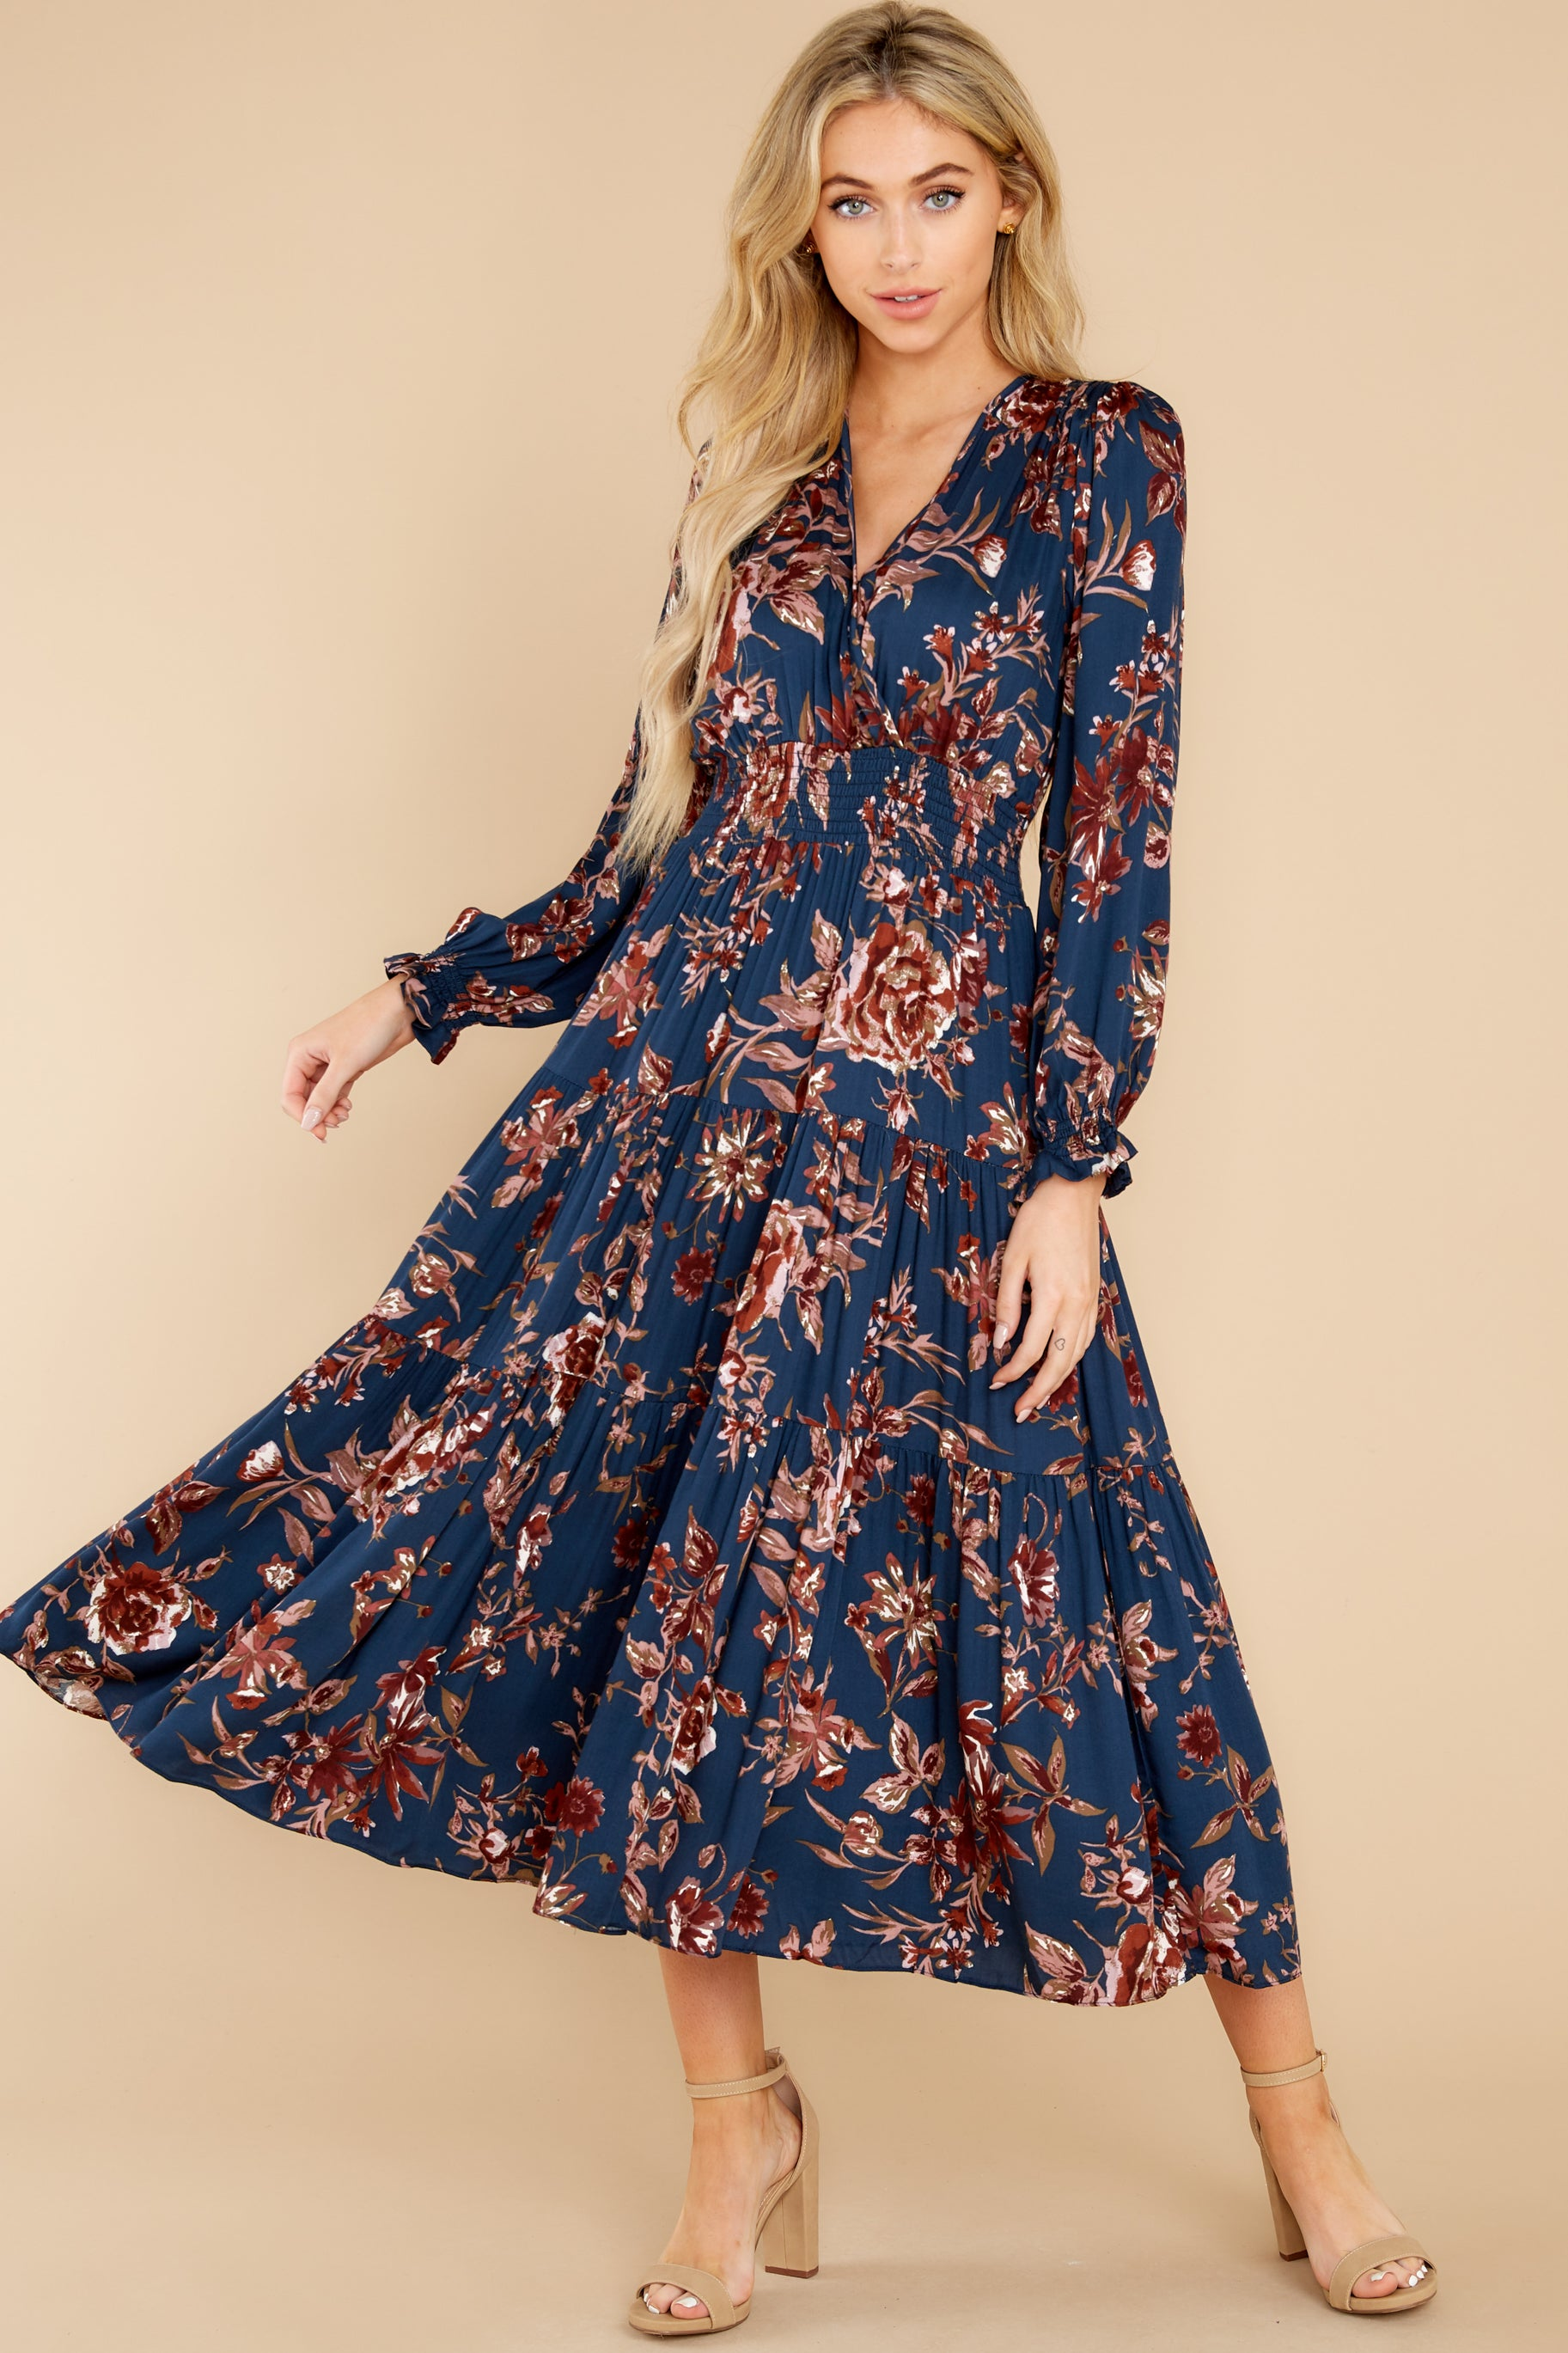 70s Dresses – Disco Dress, Hippie Dress, Wrap Dress Divine Nights Navy Floral Print Maxi Dress $62.00 AT vintagedancer.com